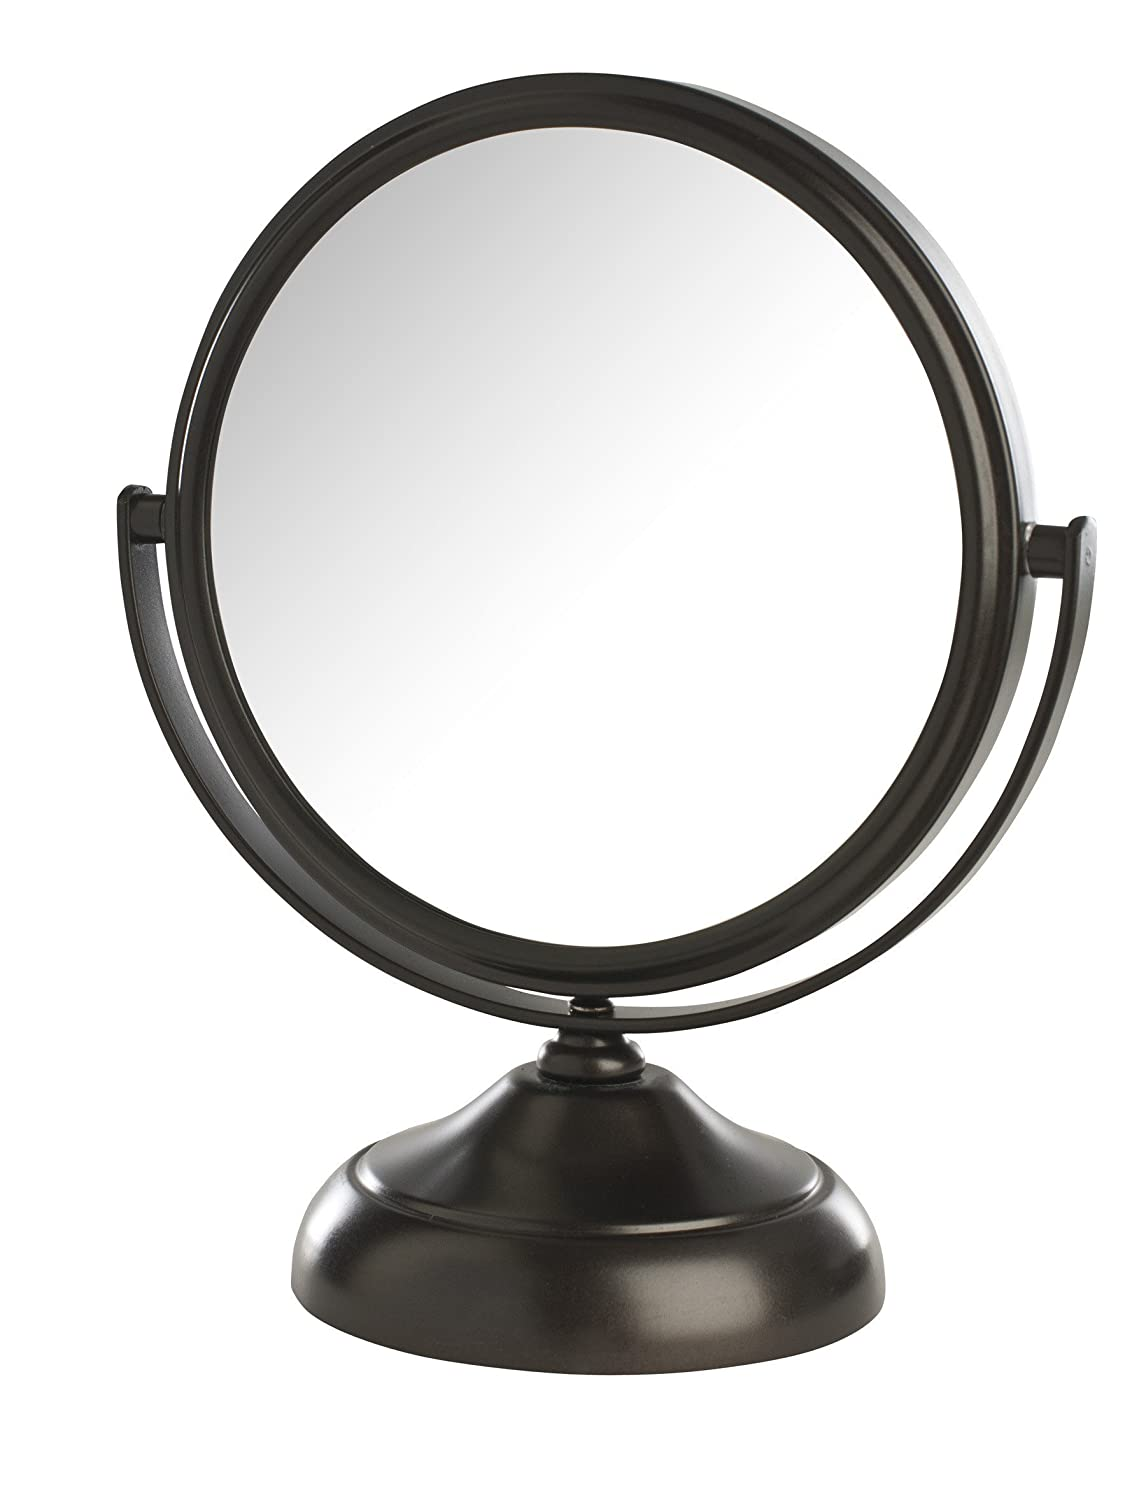 Jerdon MC247BZ Dual-Sided 5X/1X Magnification Table Top Makeup Mirror, Bronze Finish, 1 Count